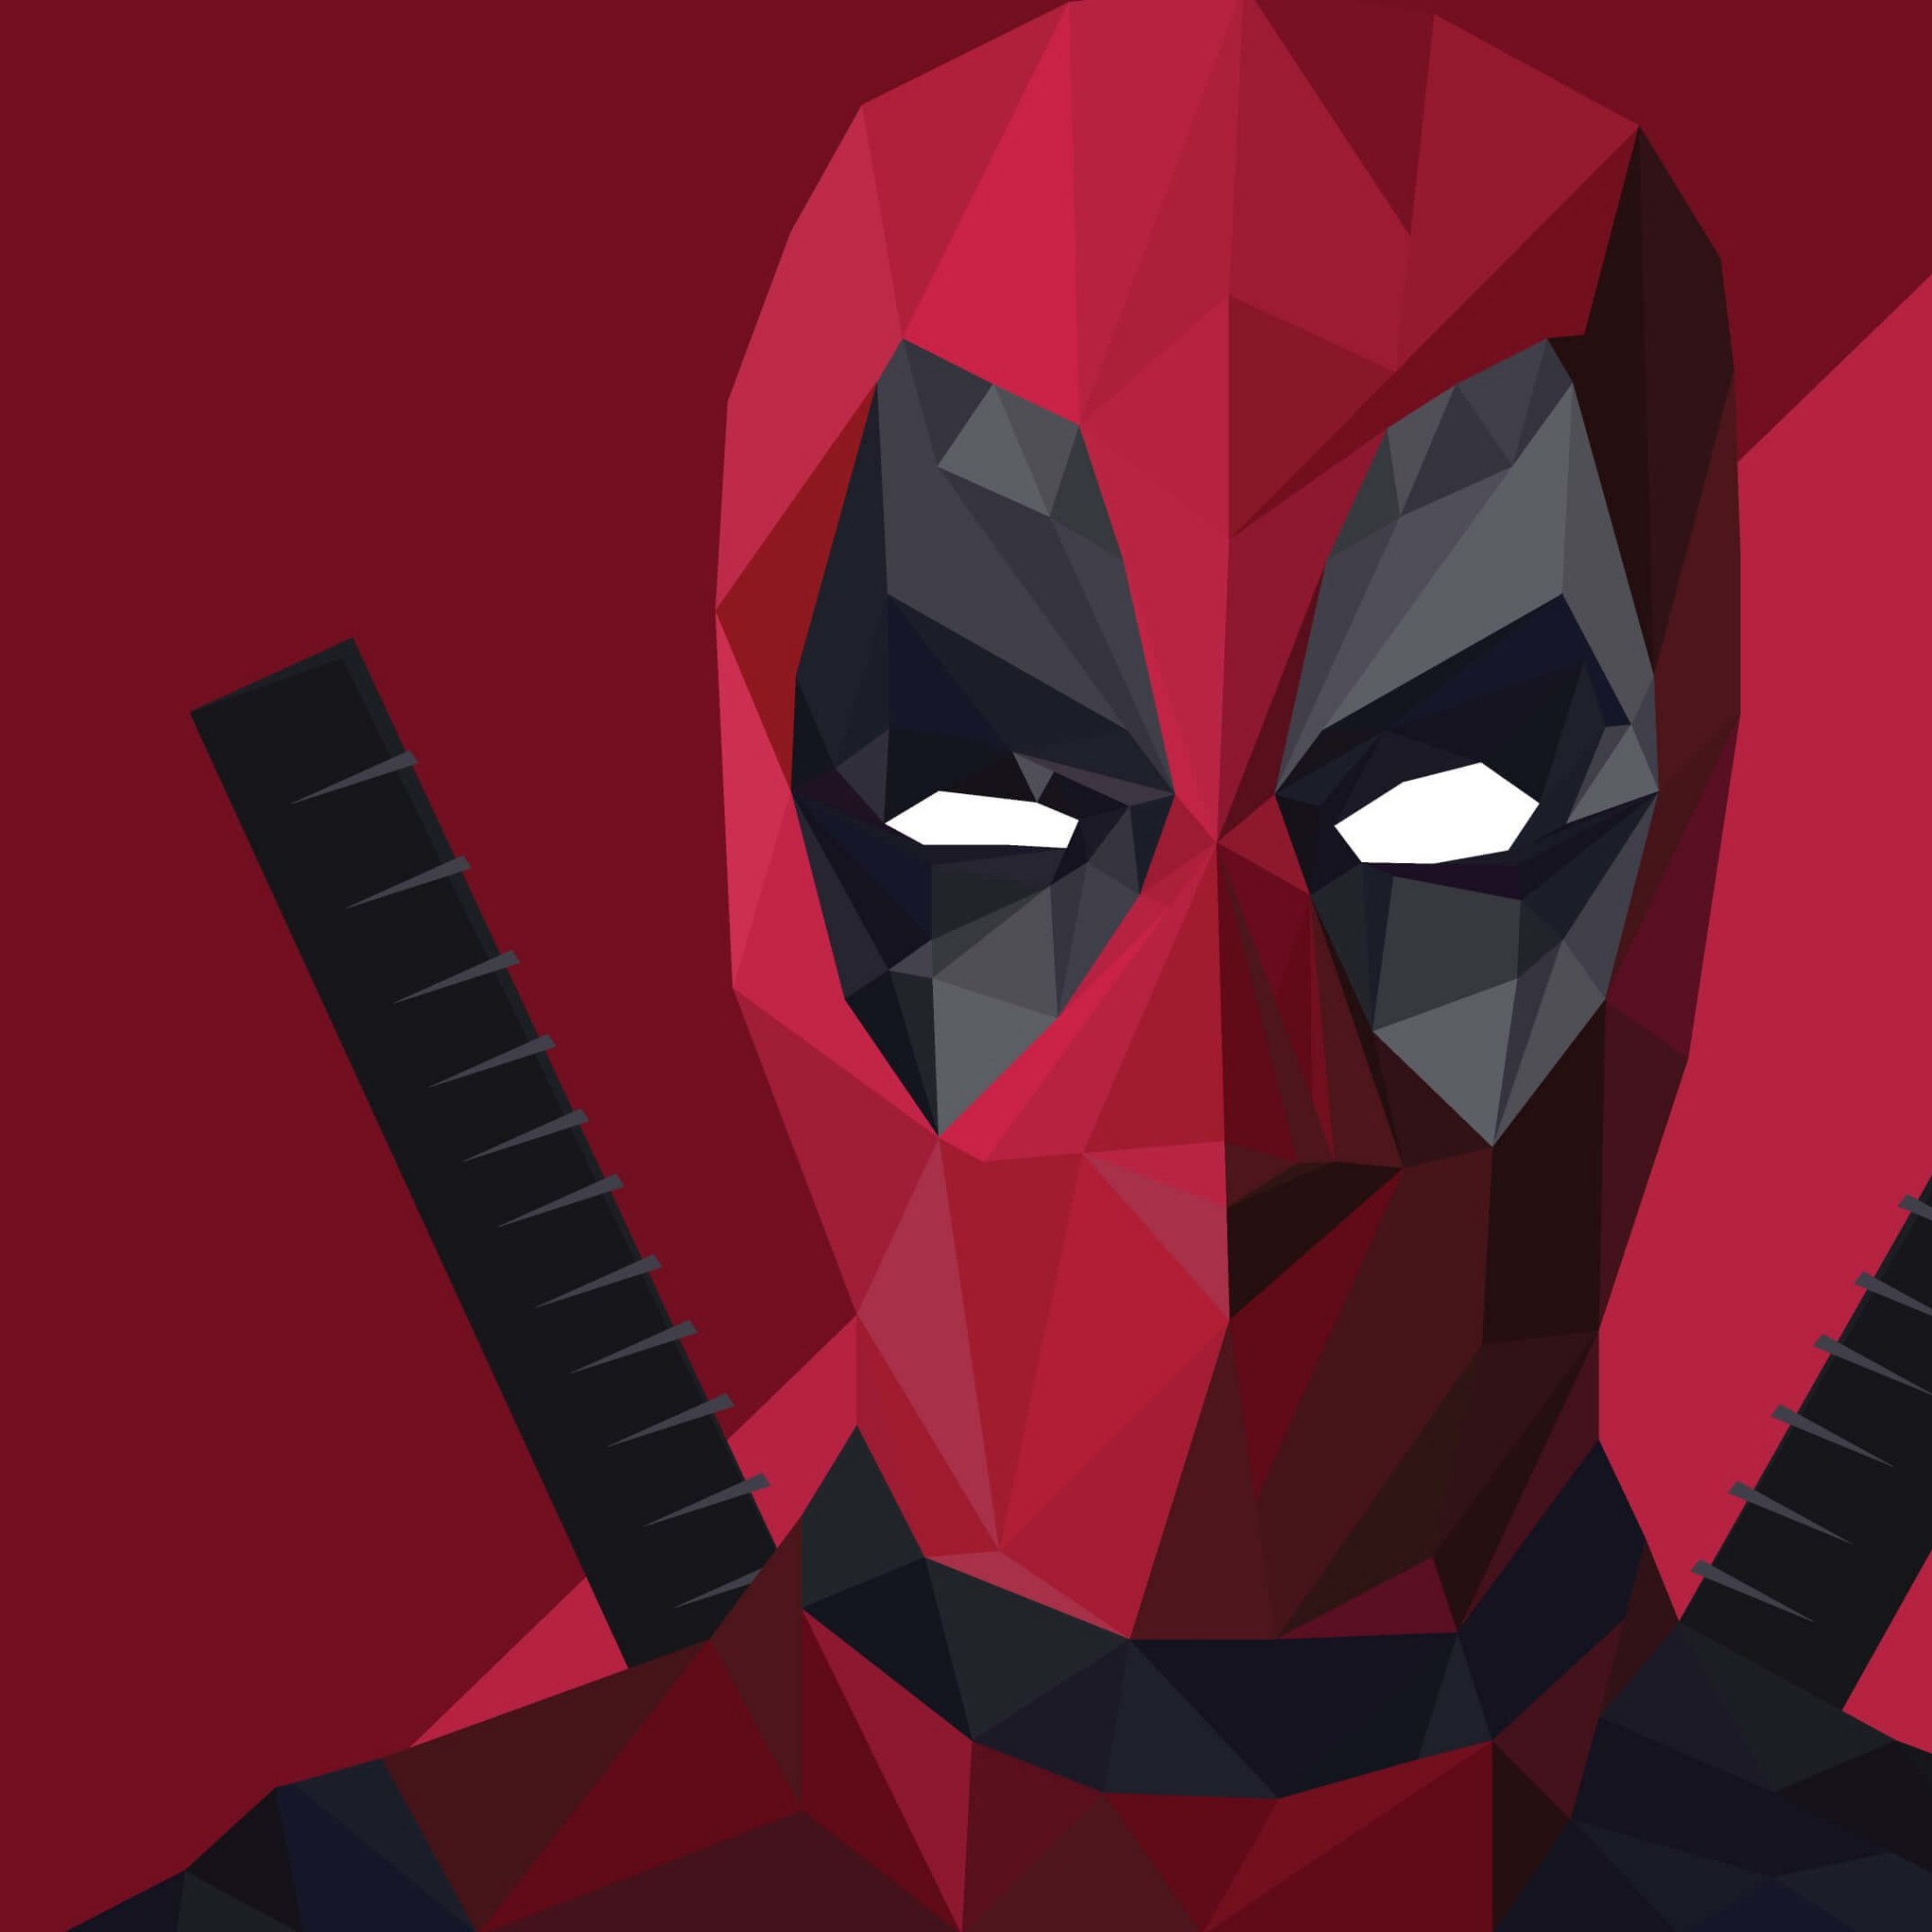 Low Poly Deadpool Wallpaper for Google Nexus 9